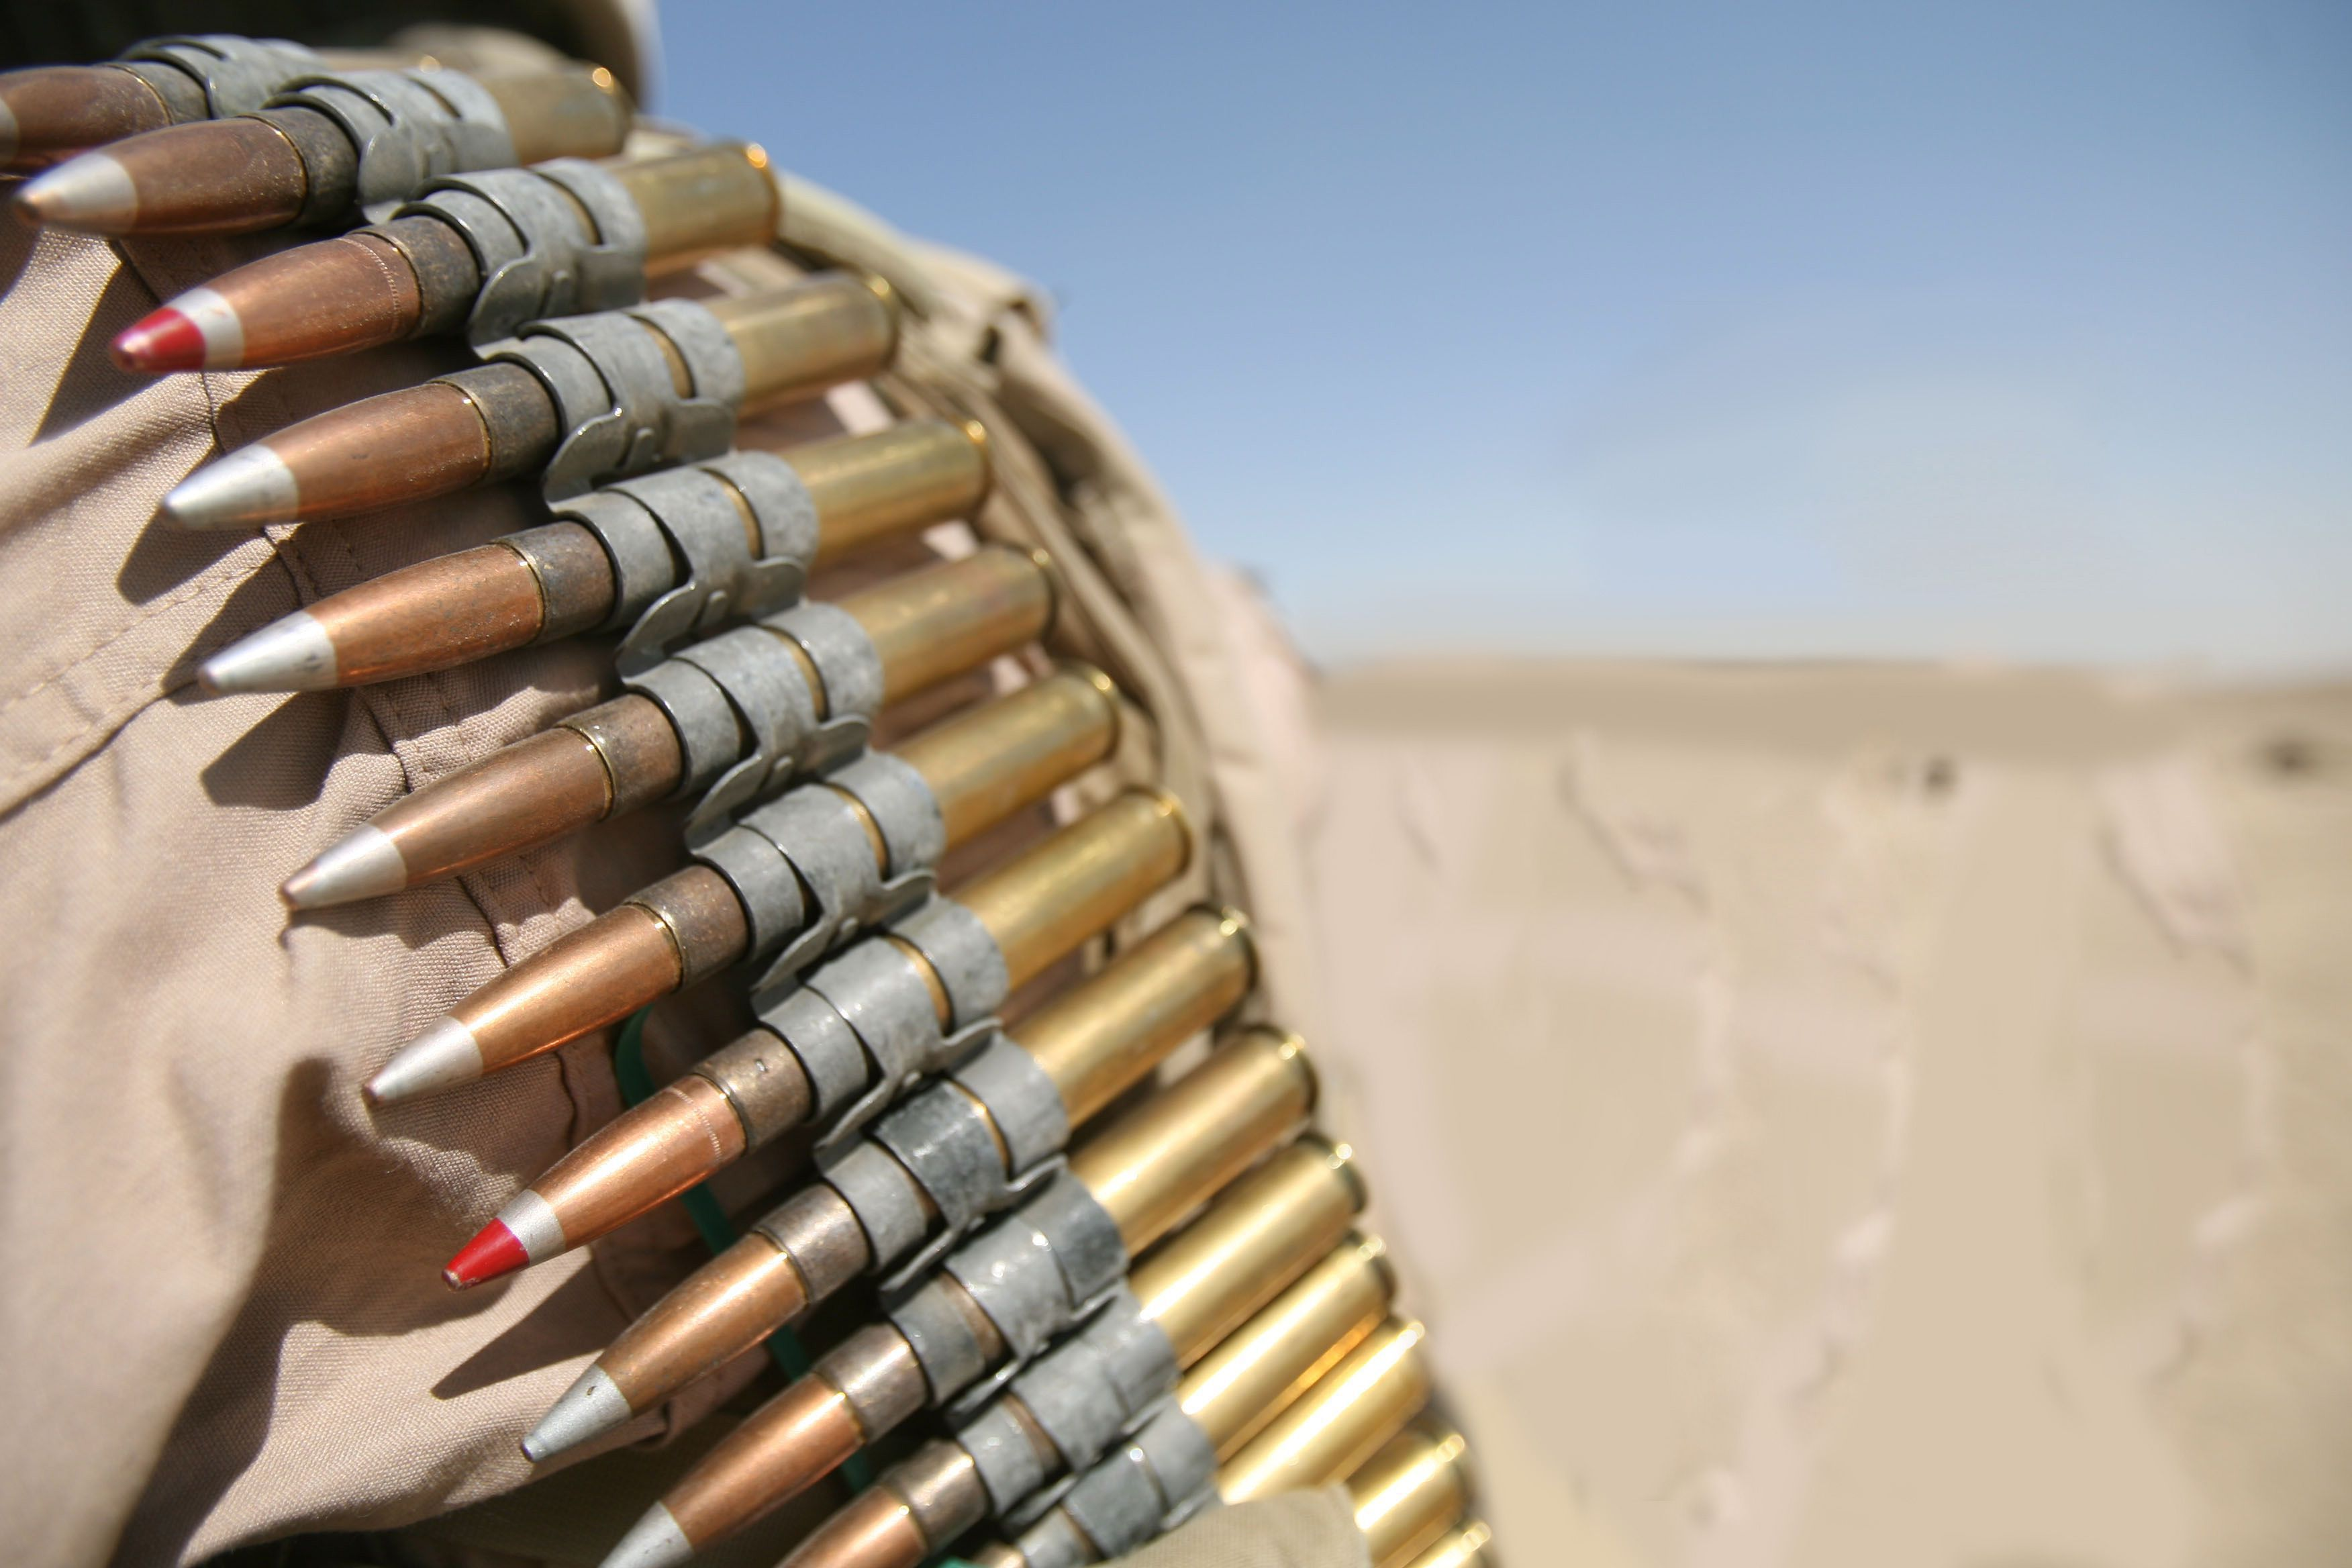 Bullets Images